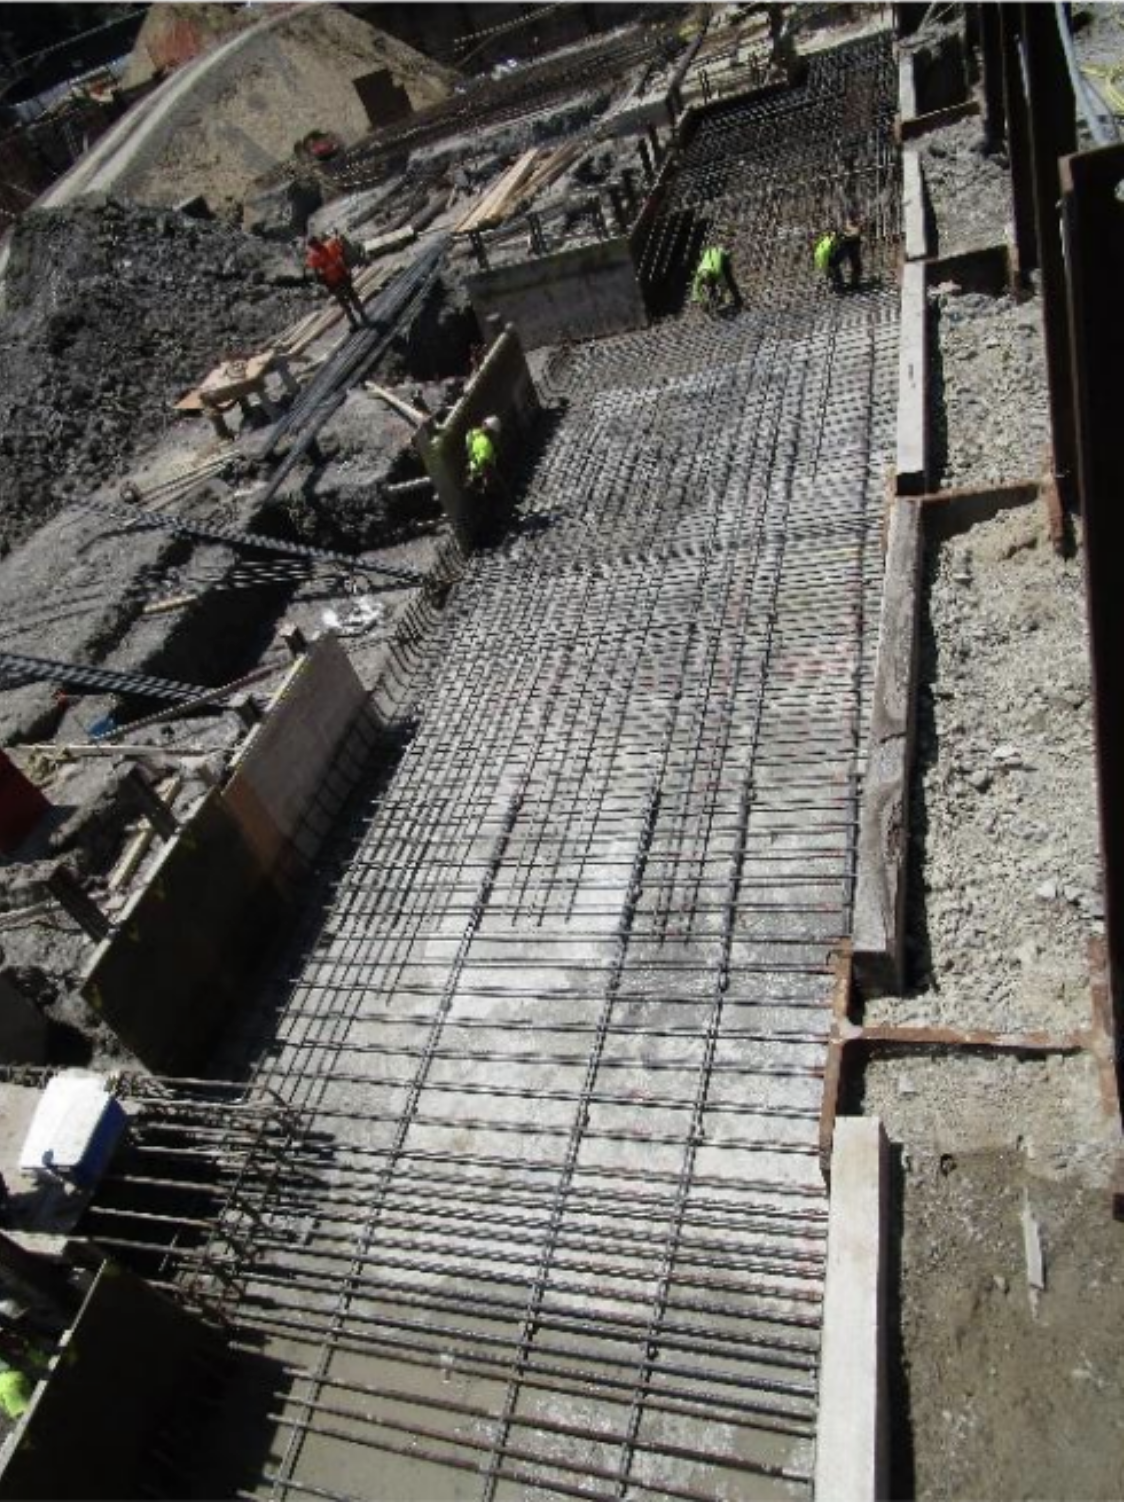 In the process of installing foundation reinforcement along grid A from grids 4 to 8